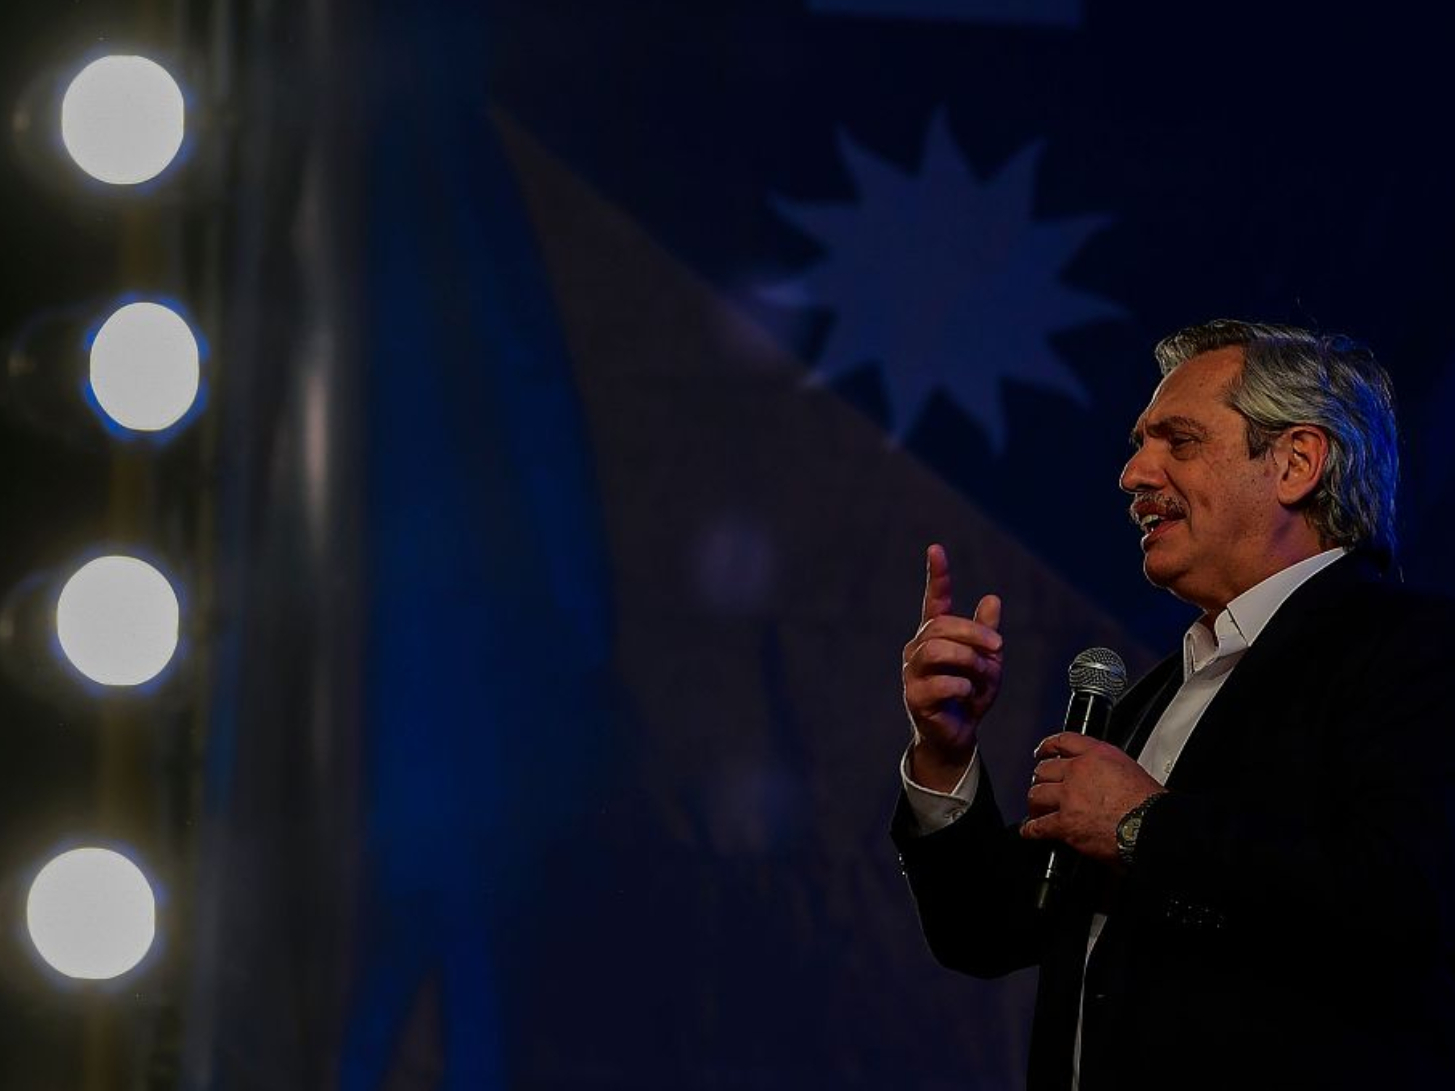 Incumbent president concedes defeat in Argentine presidential election